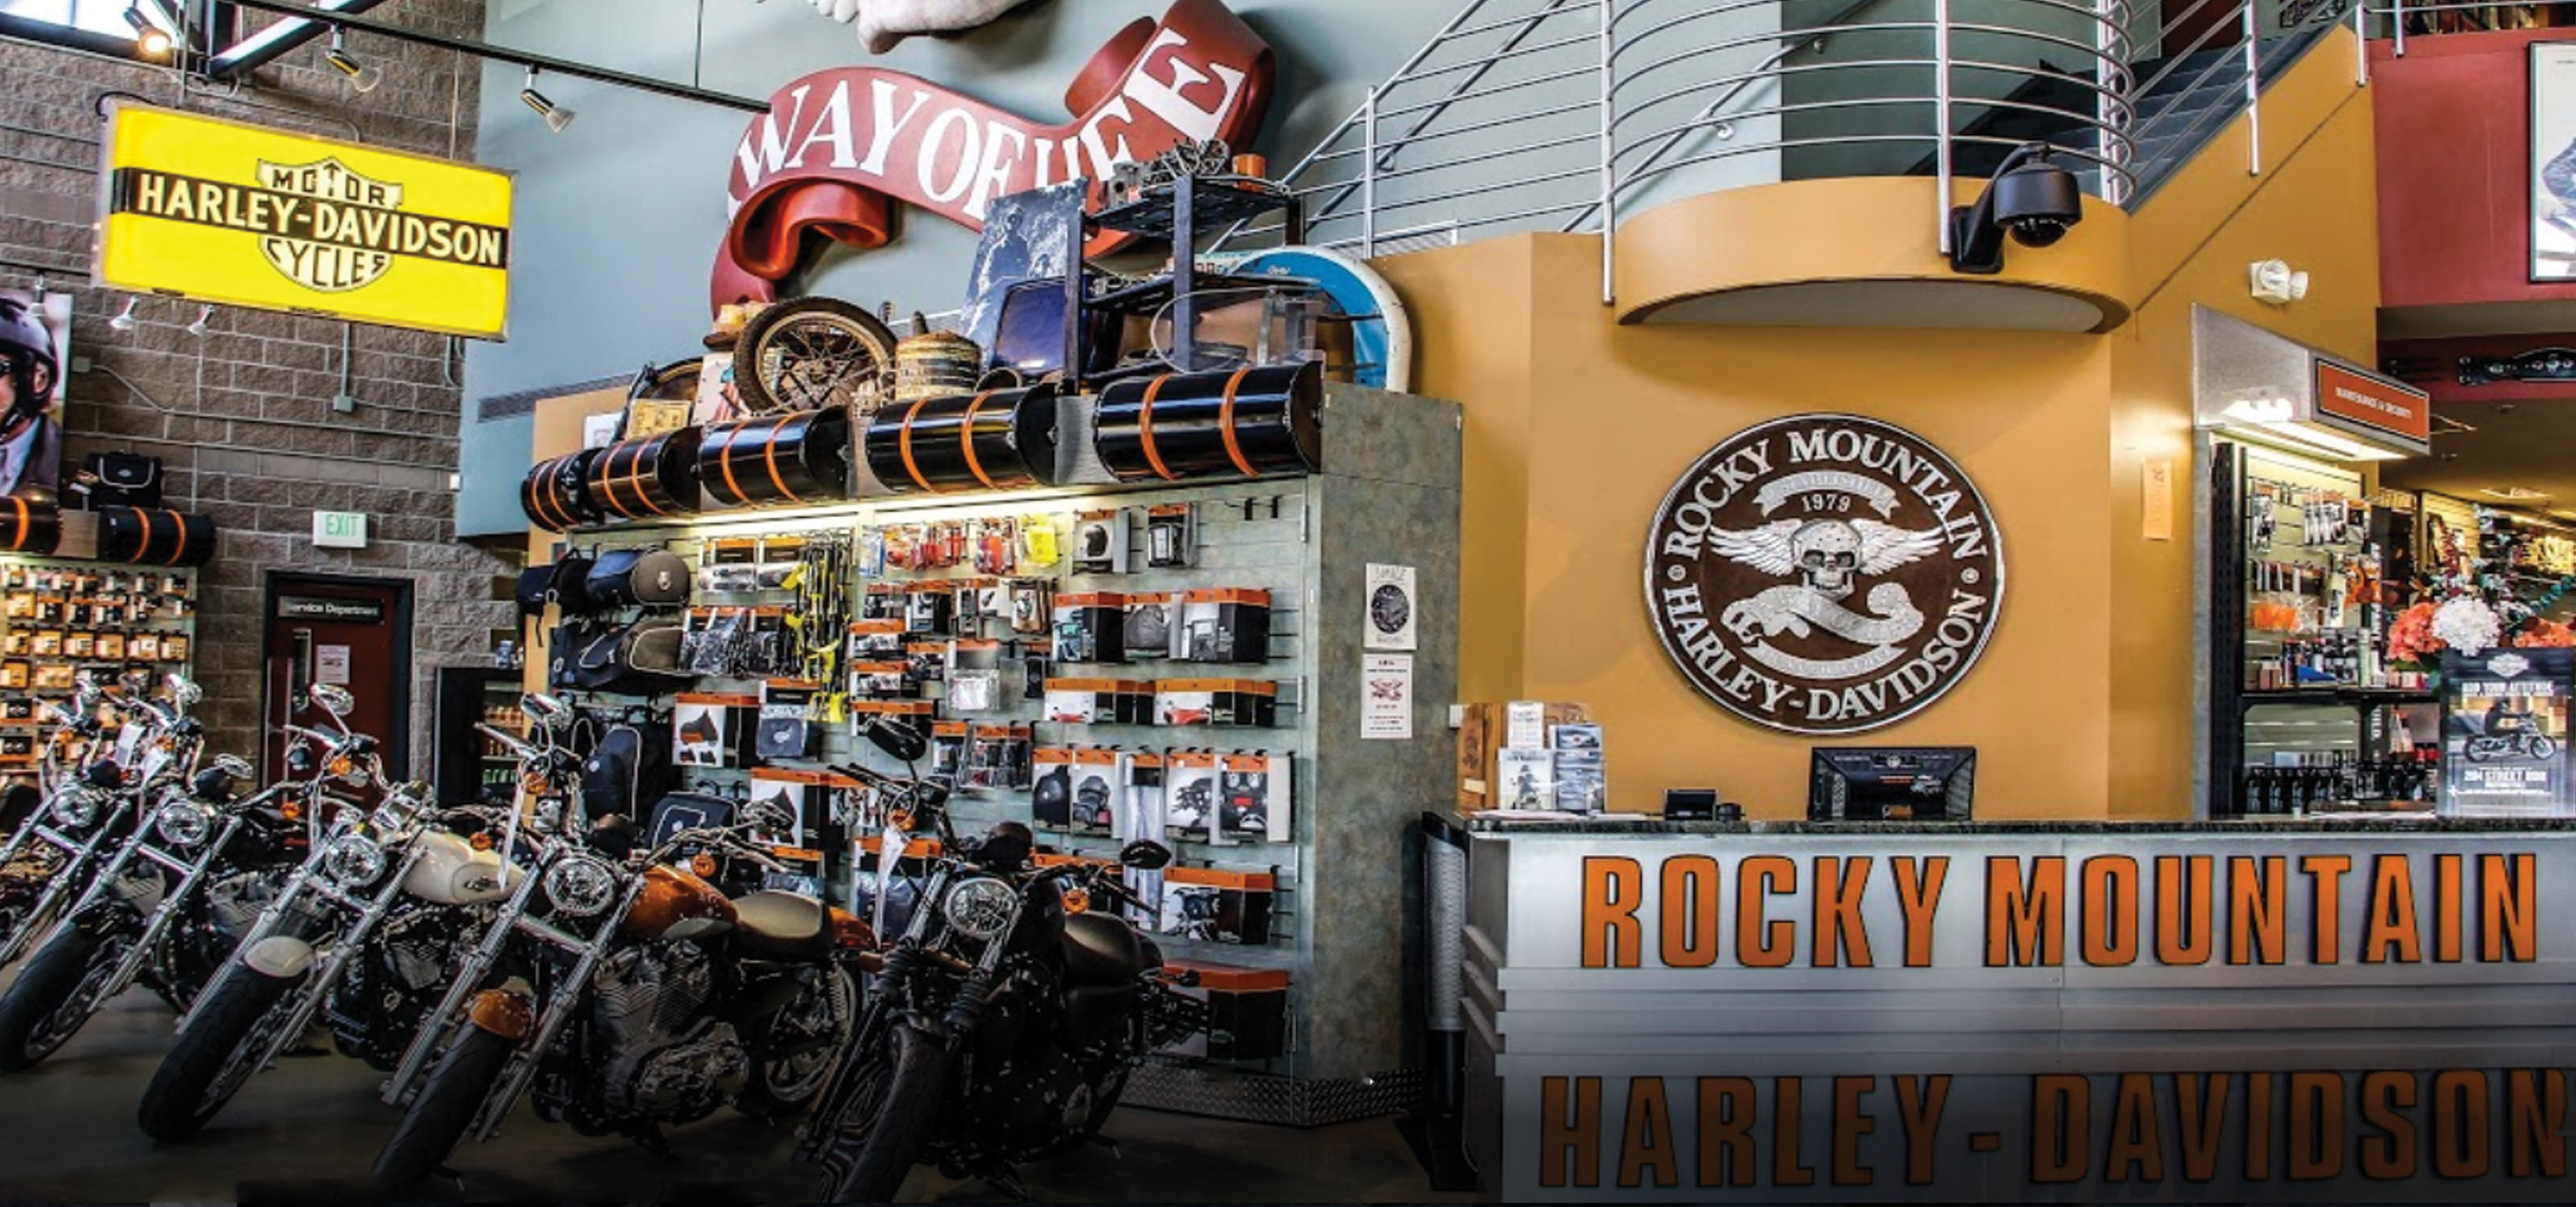 Rocky Mountain Harley